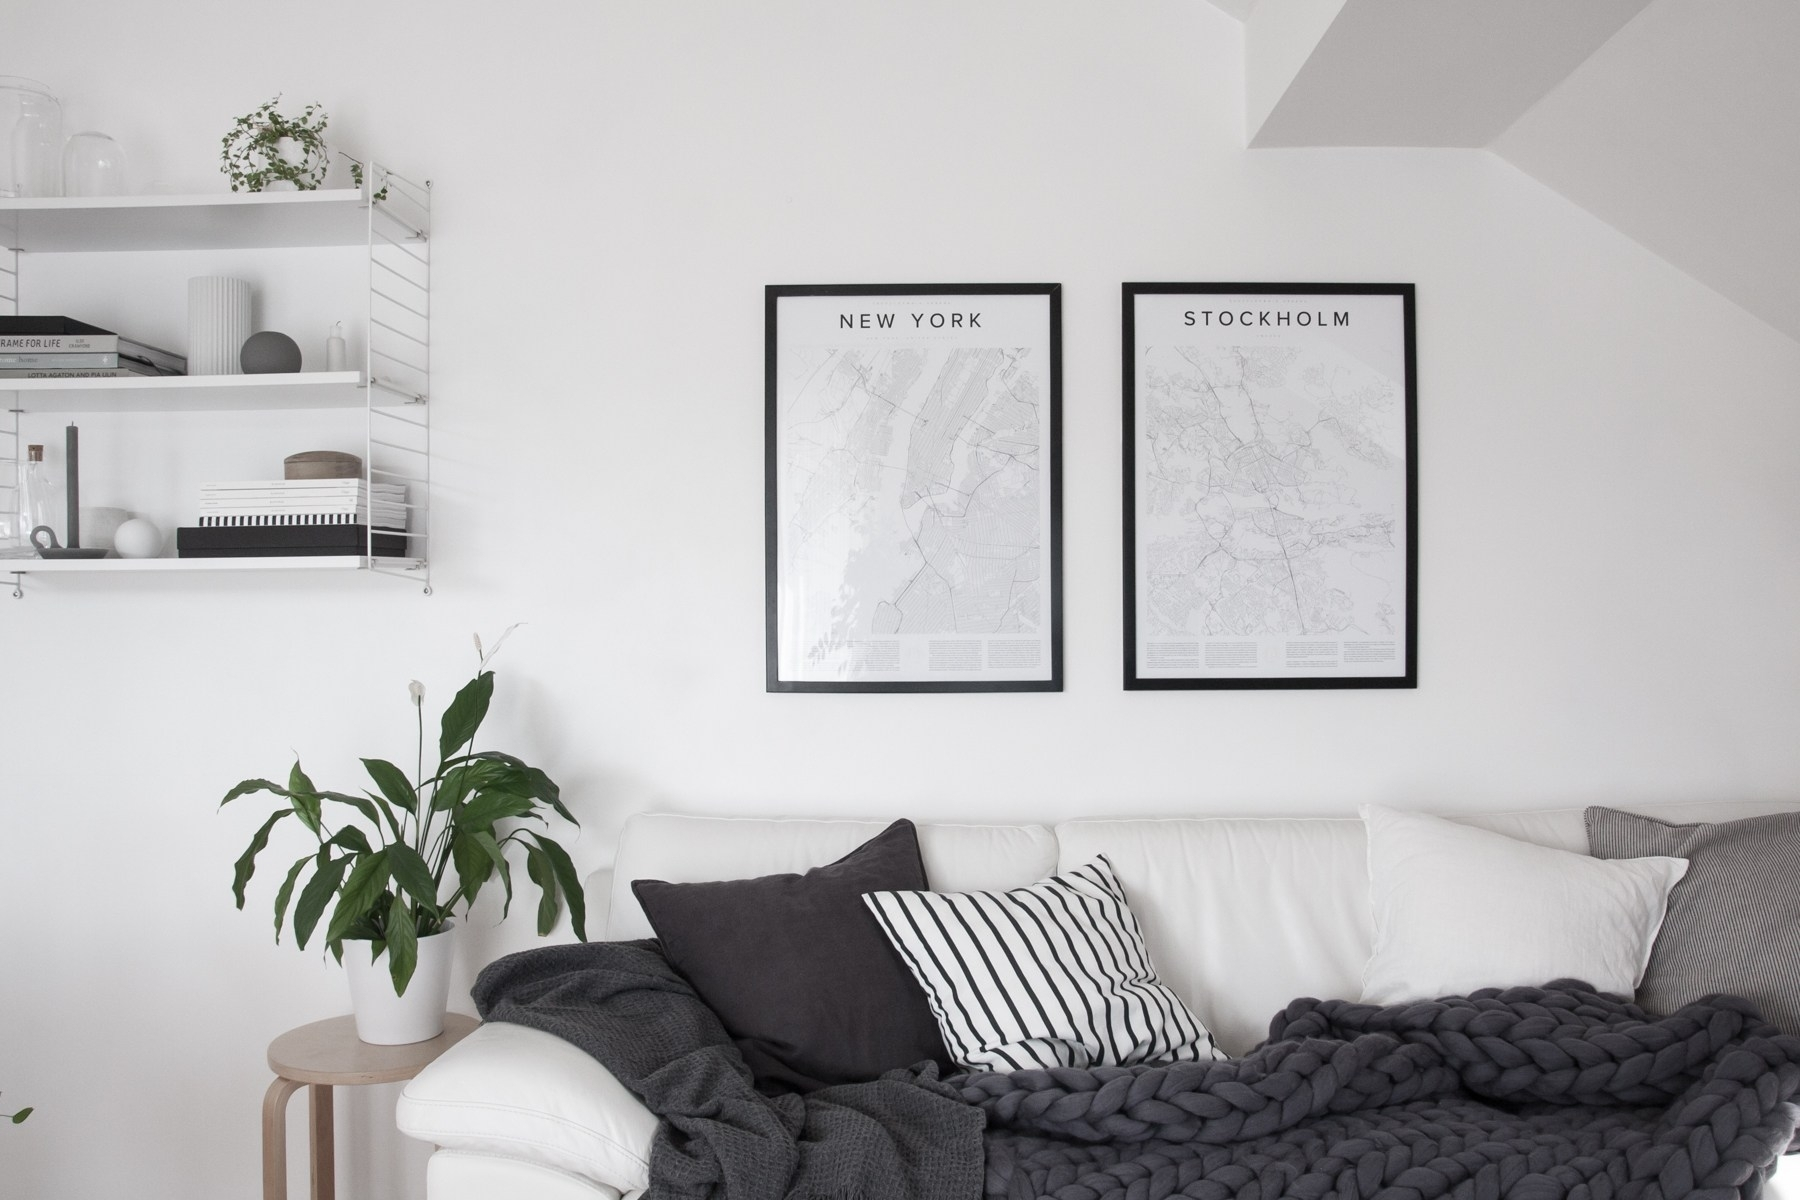 Top 10 Tips For Adding Scandinavian Style To Your Home   Happy Within Newest Grey And White Wall Accents (View 13 of 15)